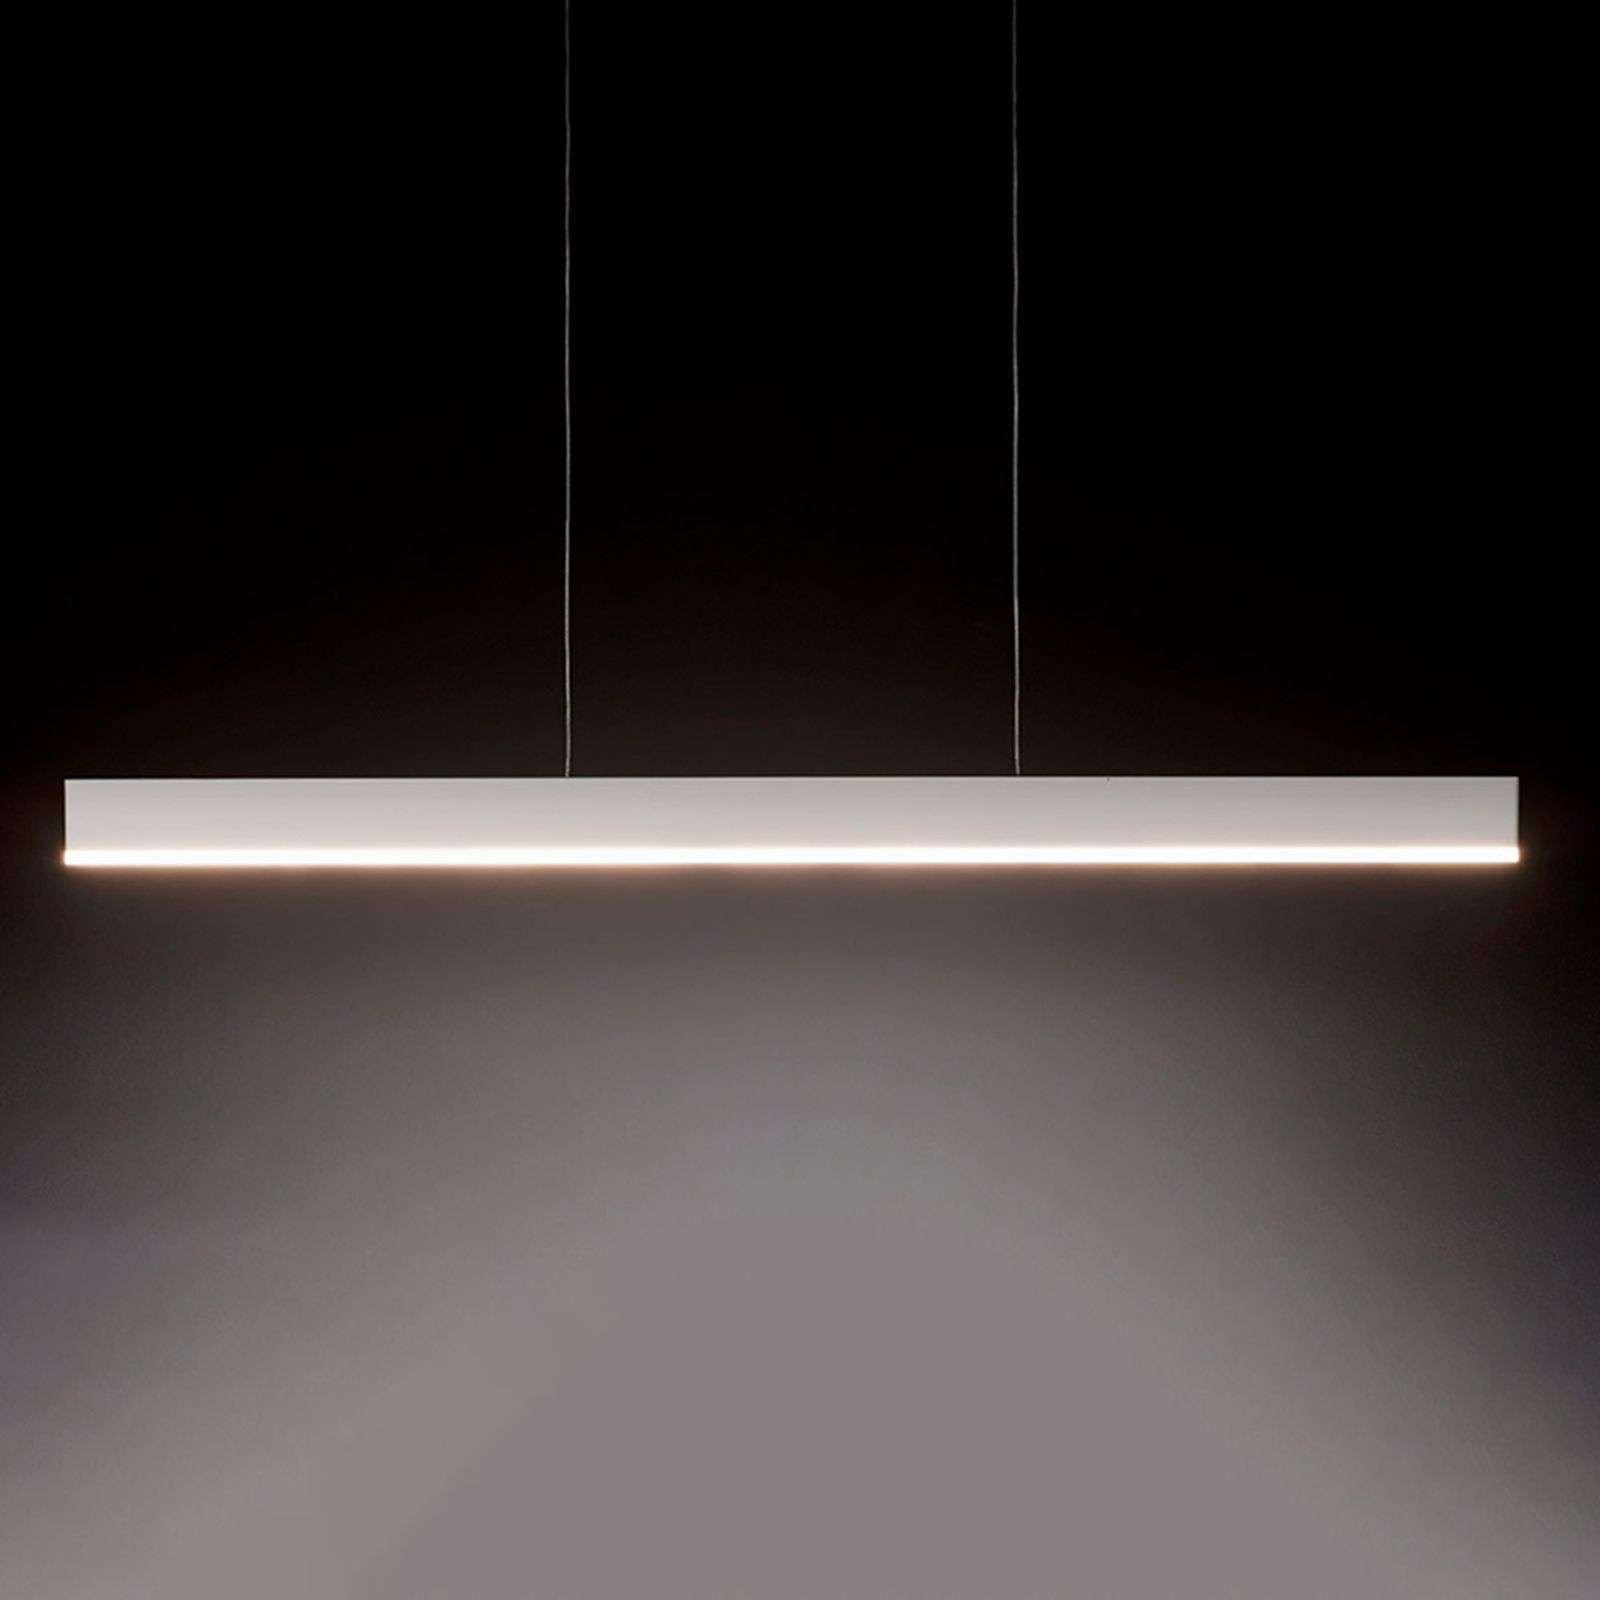 Suspension LED Riga, 160 cm